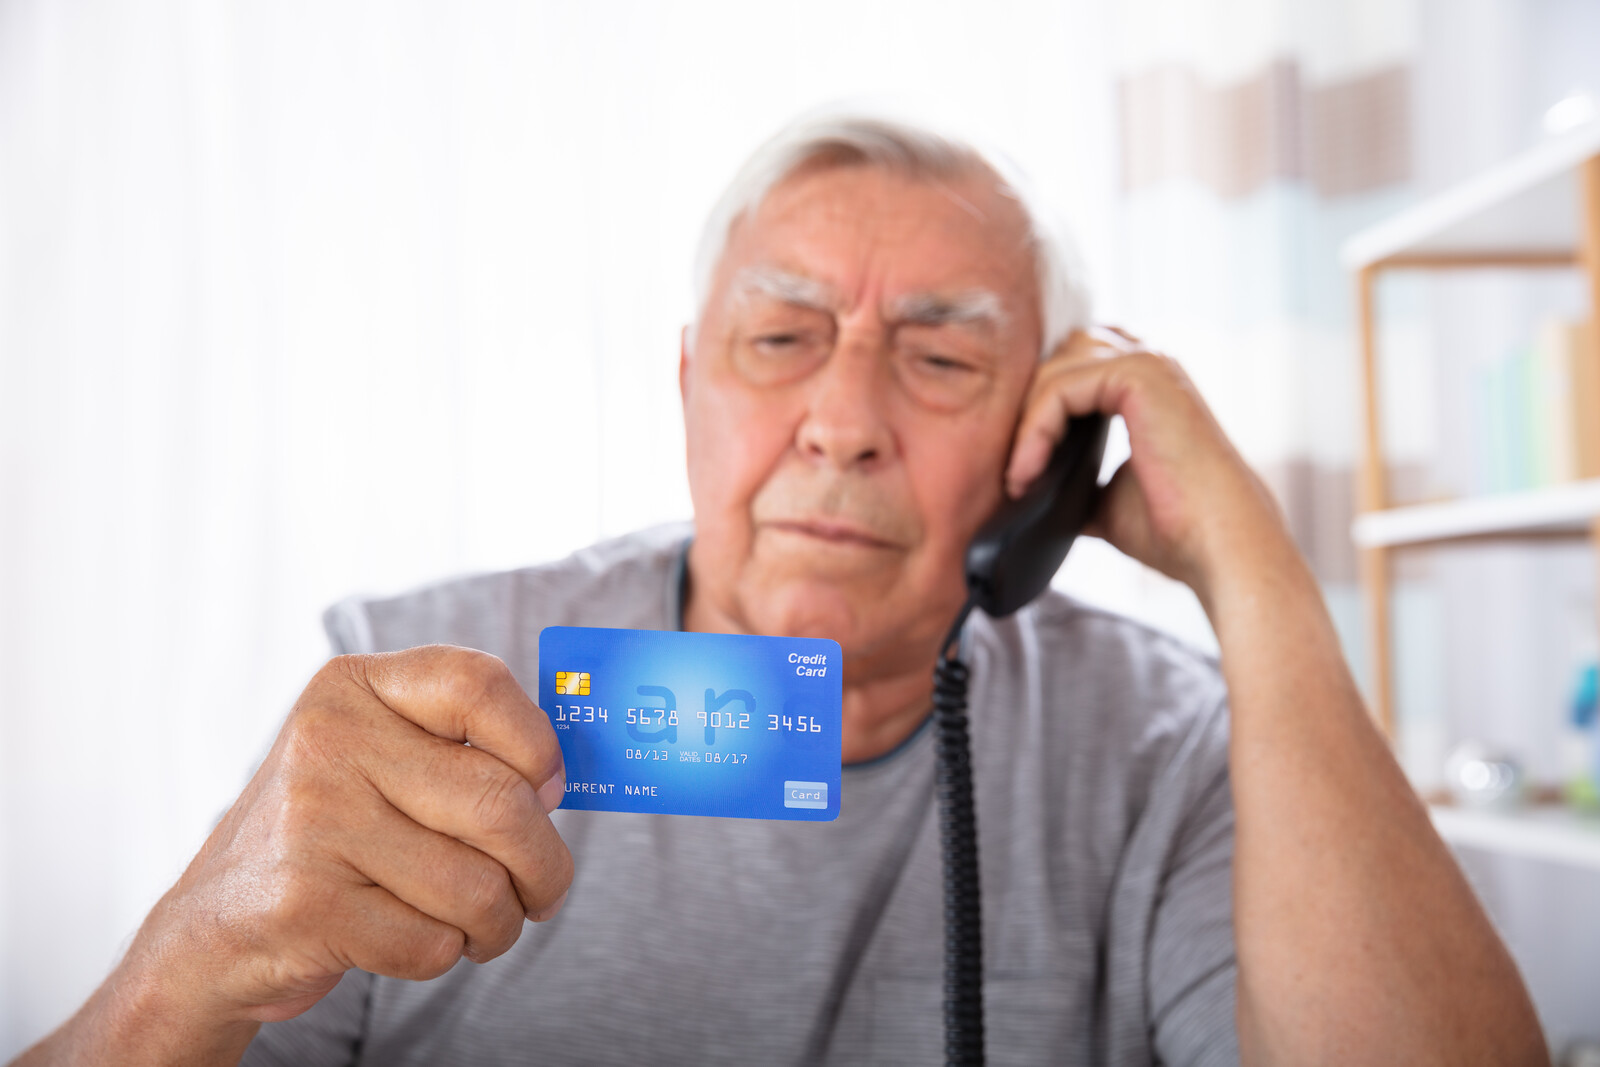 Senior man on the phone reading holding his credit card like he is getting ready to give the information over the phone